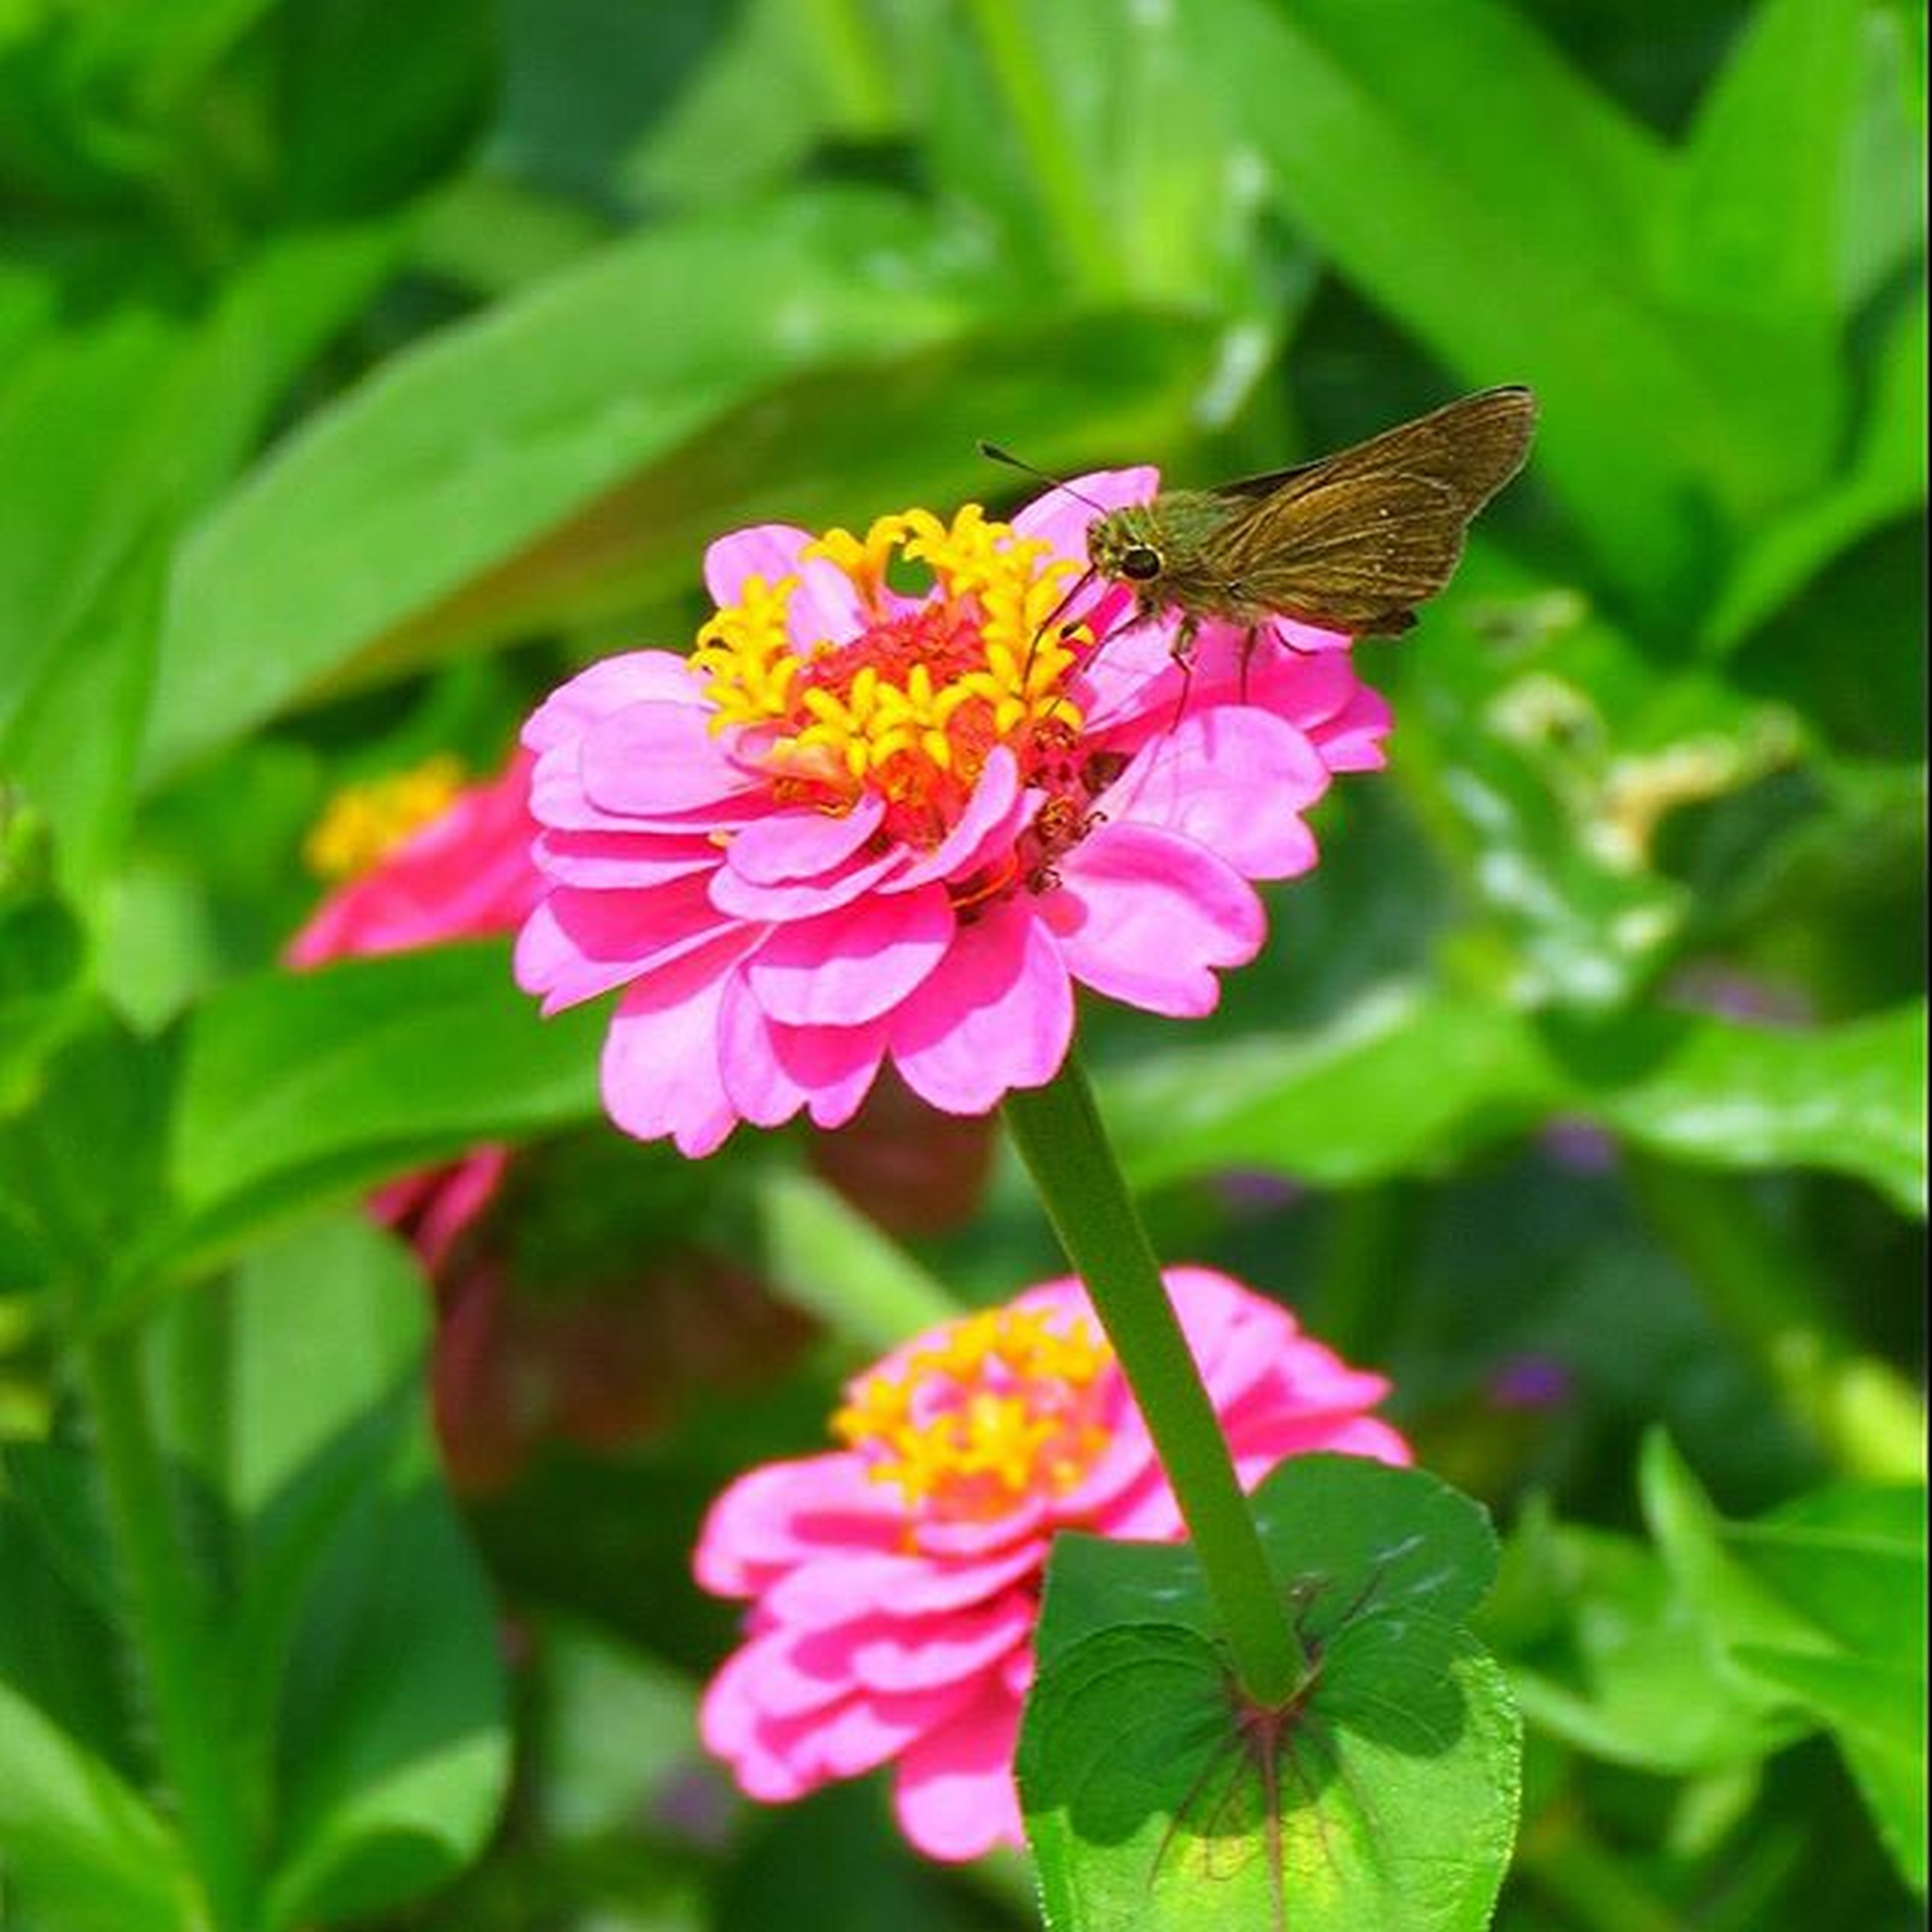 flower, one animal, insect, animal themes, freshness, animals in the wild, wildlife, petal, fragility, pollination, flower head, beauty in nature, growth, pink color, close-up, focus on foreground, nature, plant, symbiotic relationship, blooming